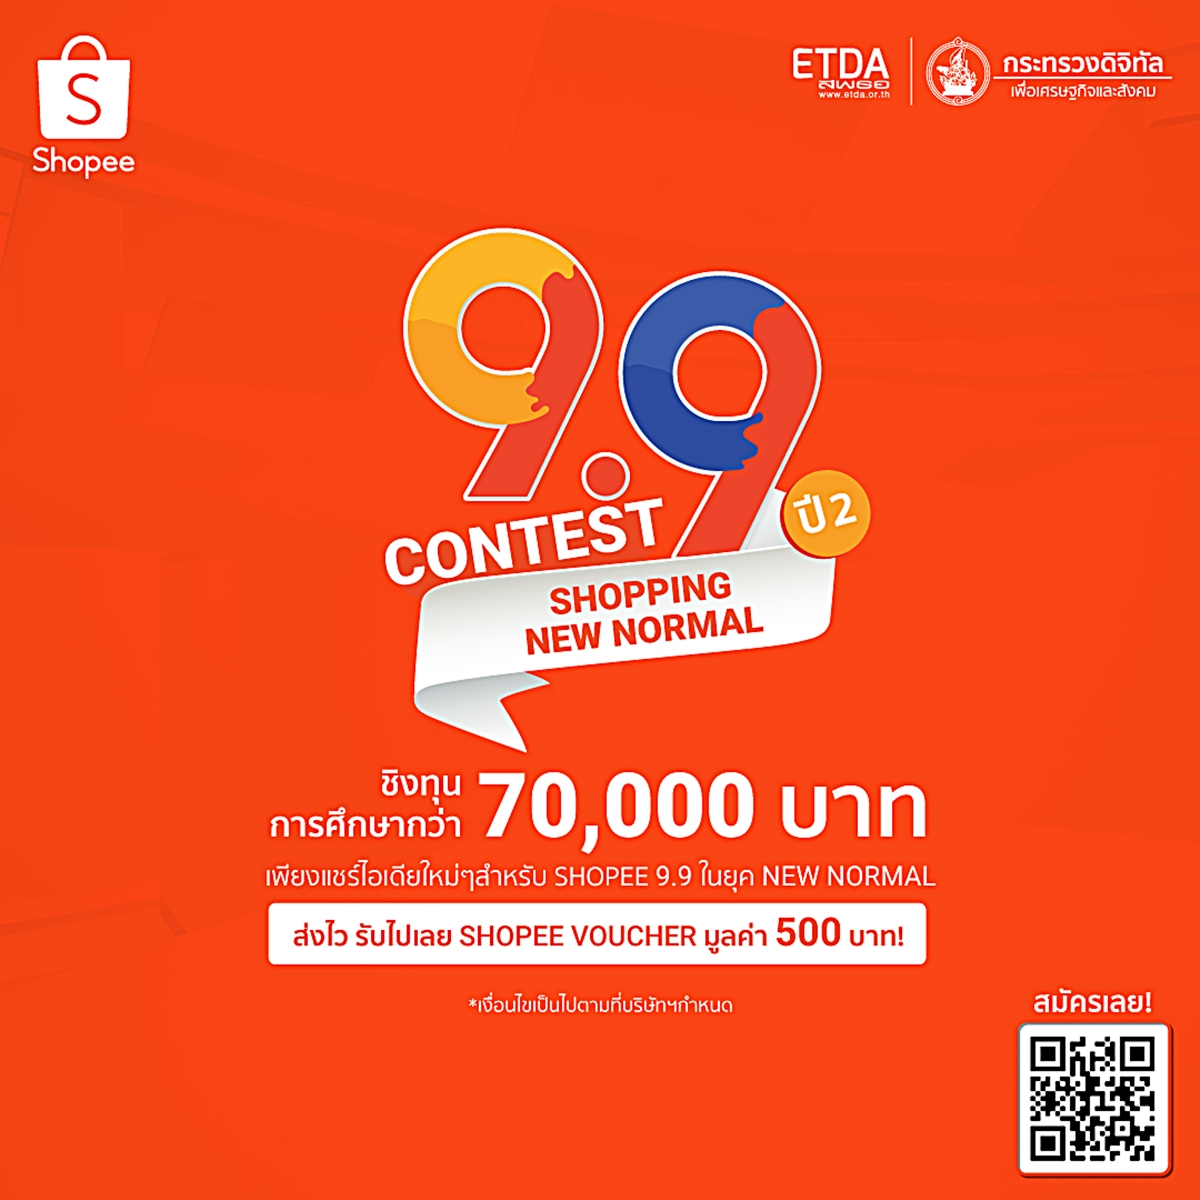 Shopee Shopee 9.9 Contest 2020